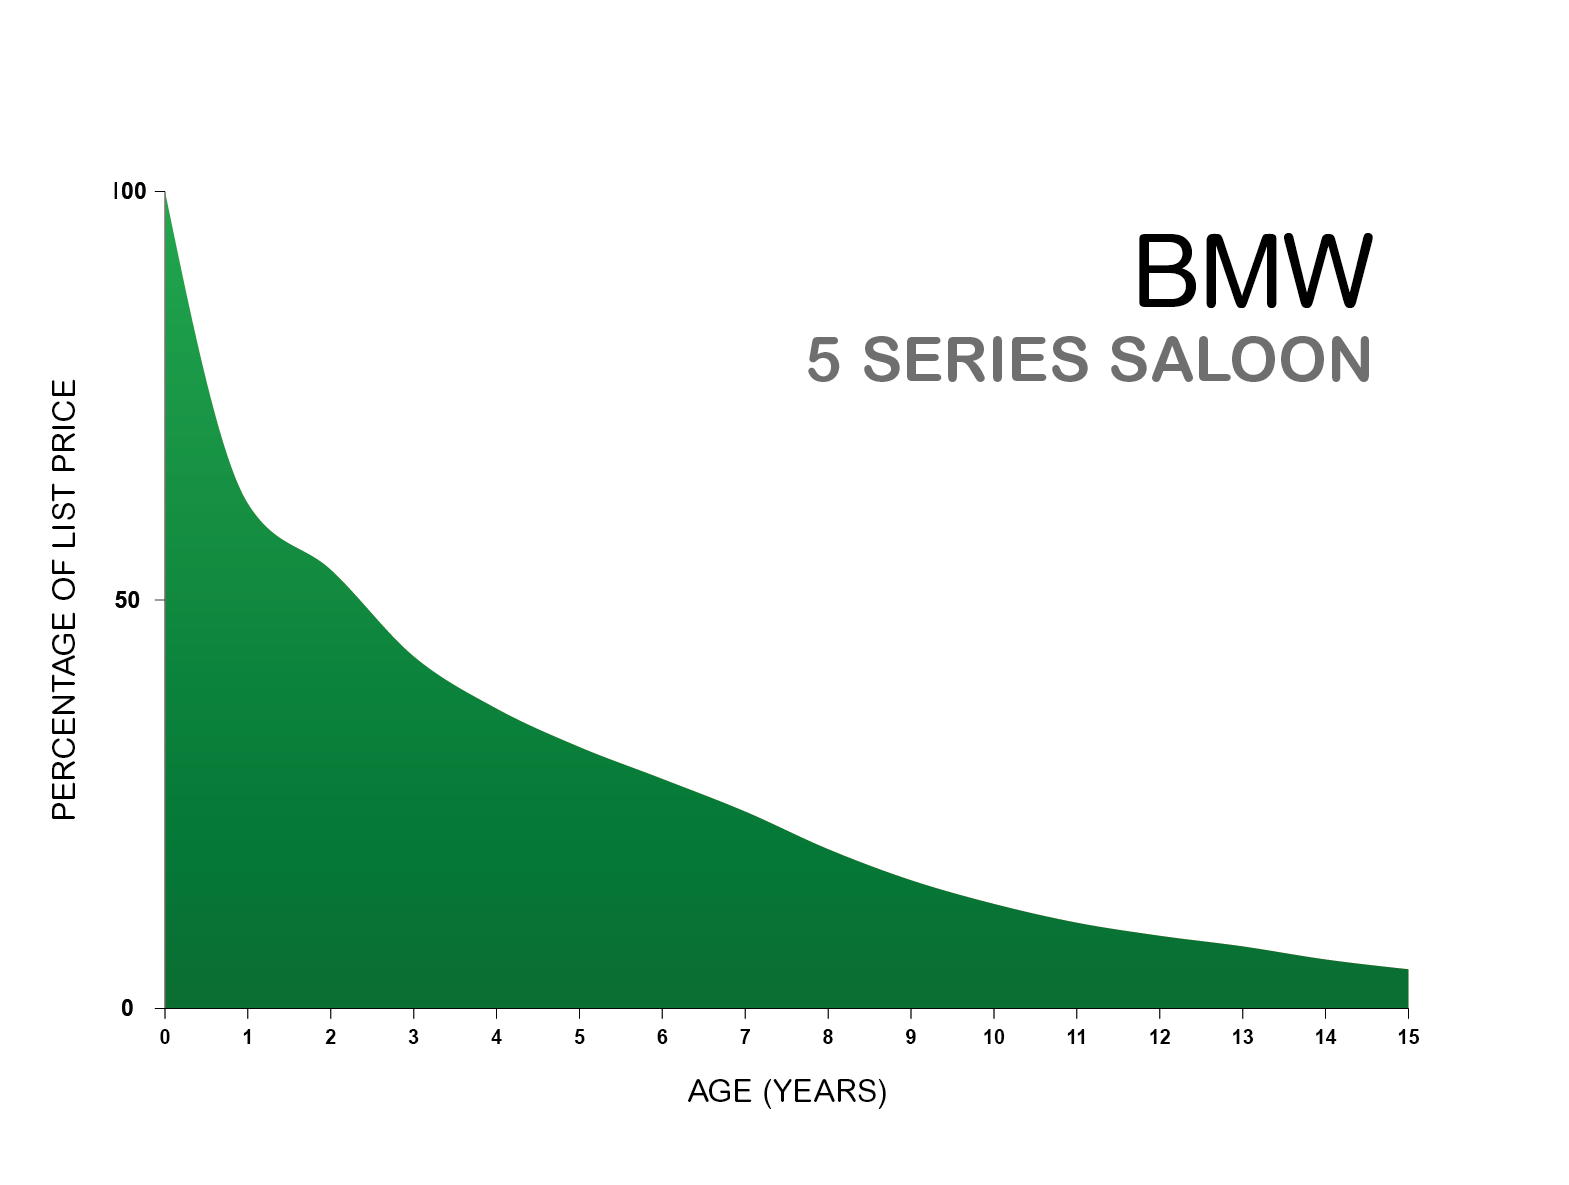 BMW 5 Series depreciation